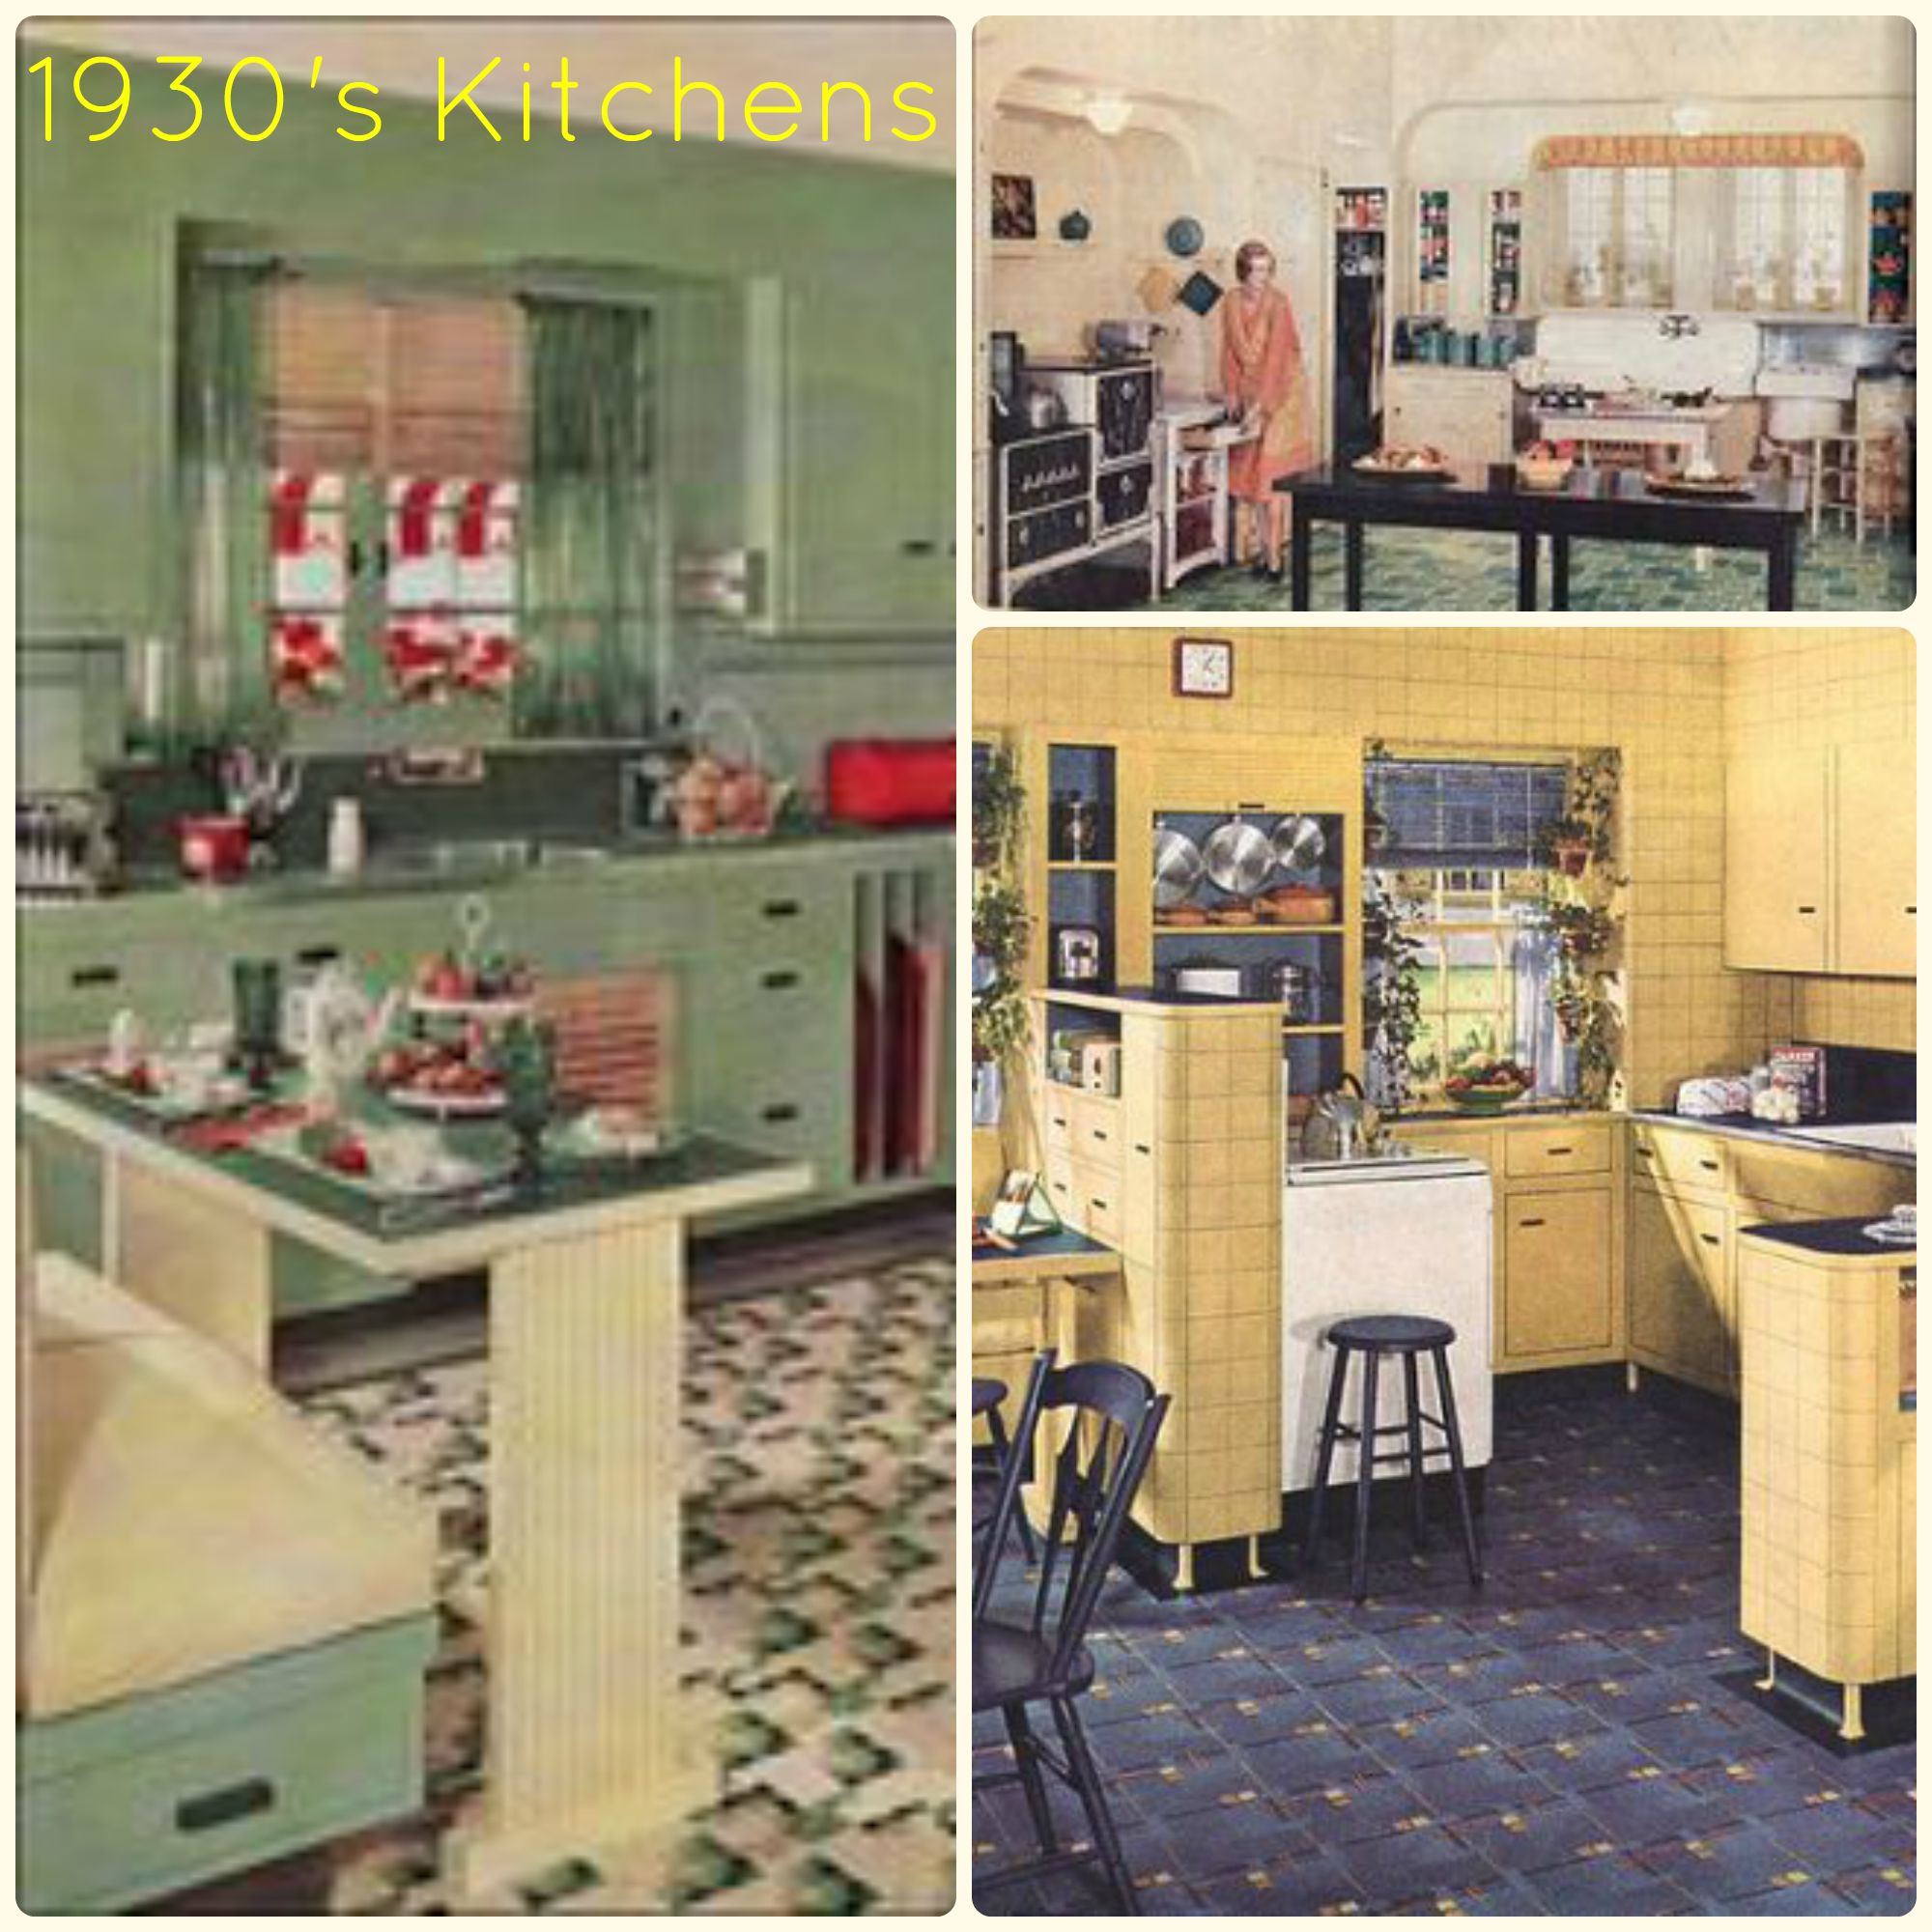 28+ [ 1930 kitchen design ] | 1930s kitchen appliances kitchen